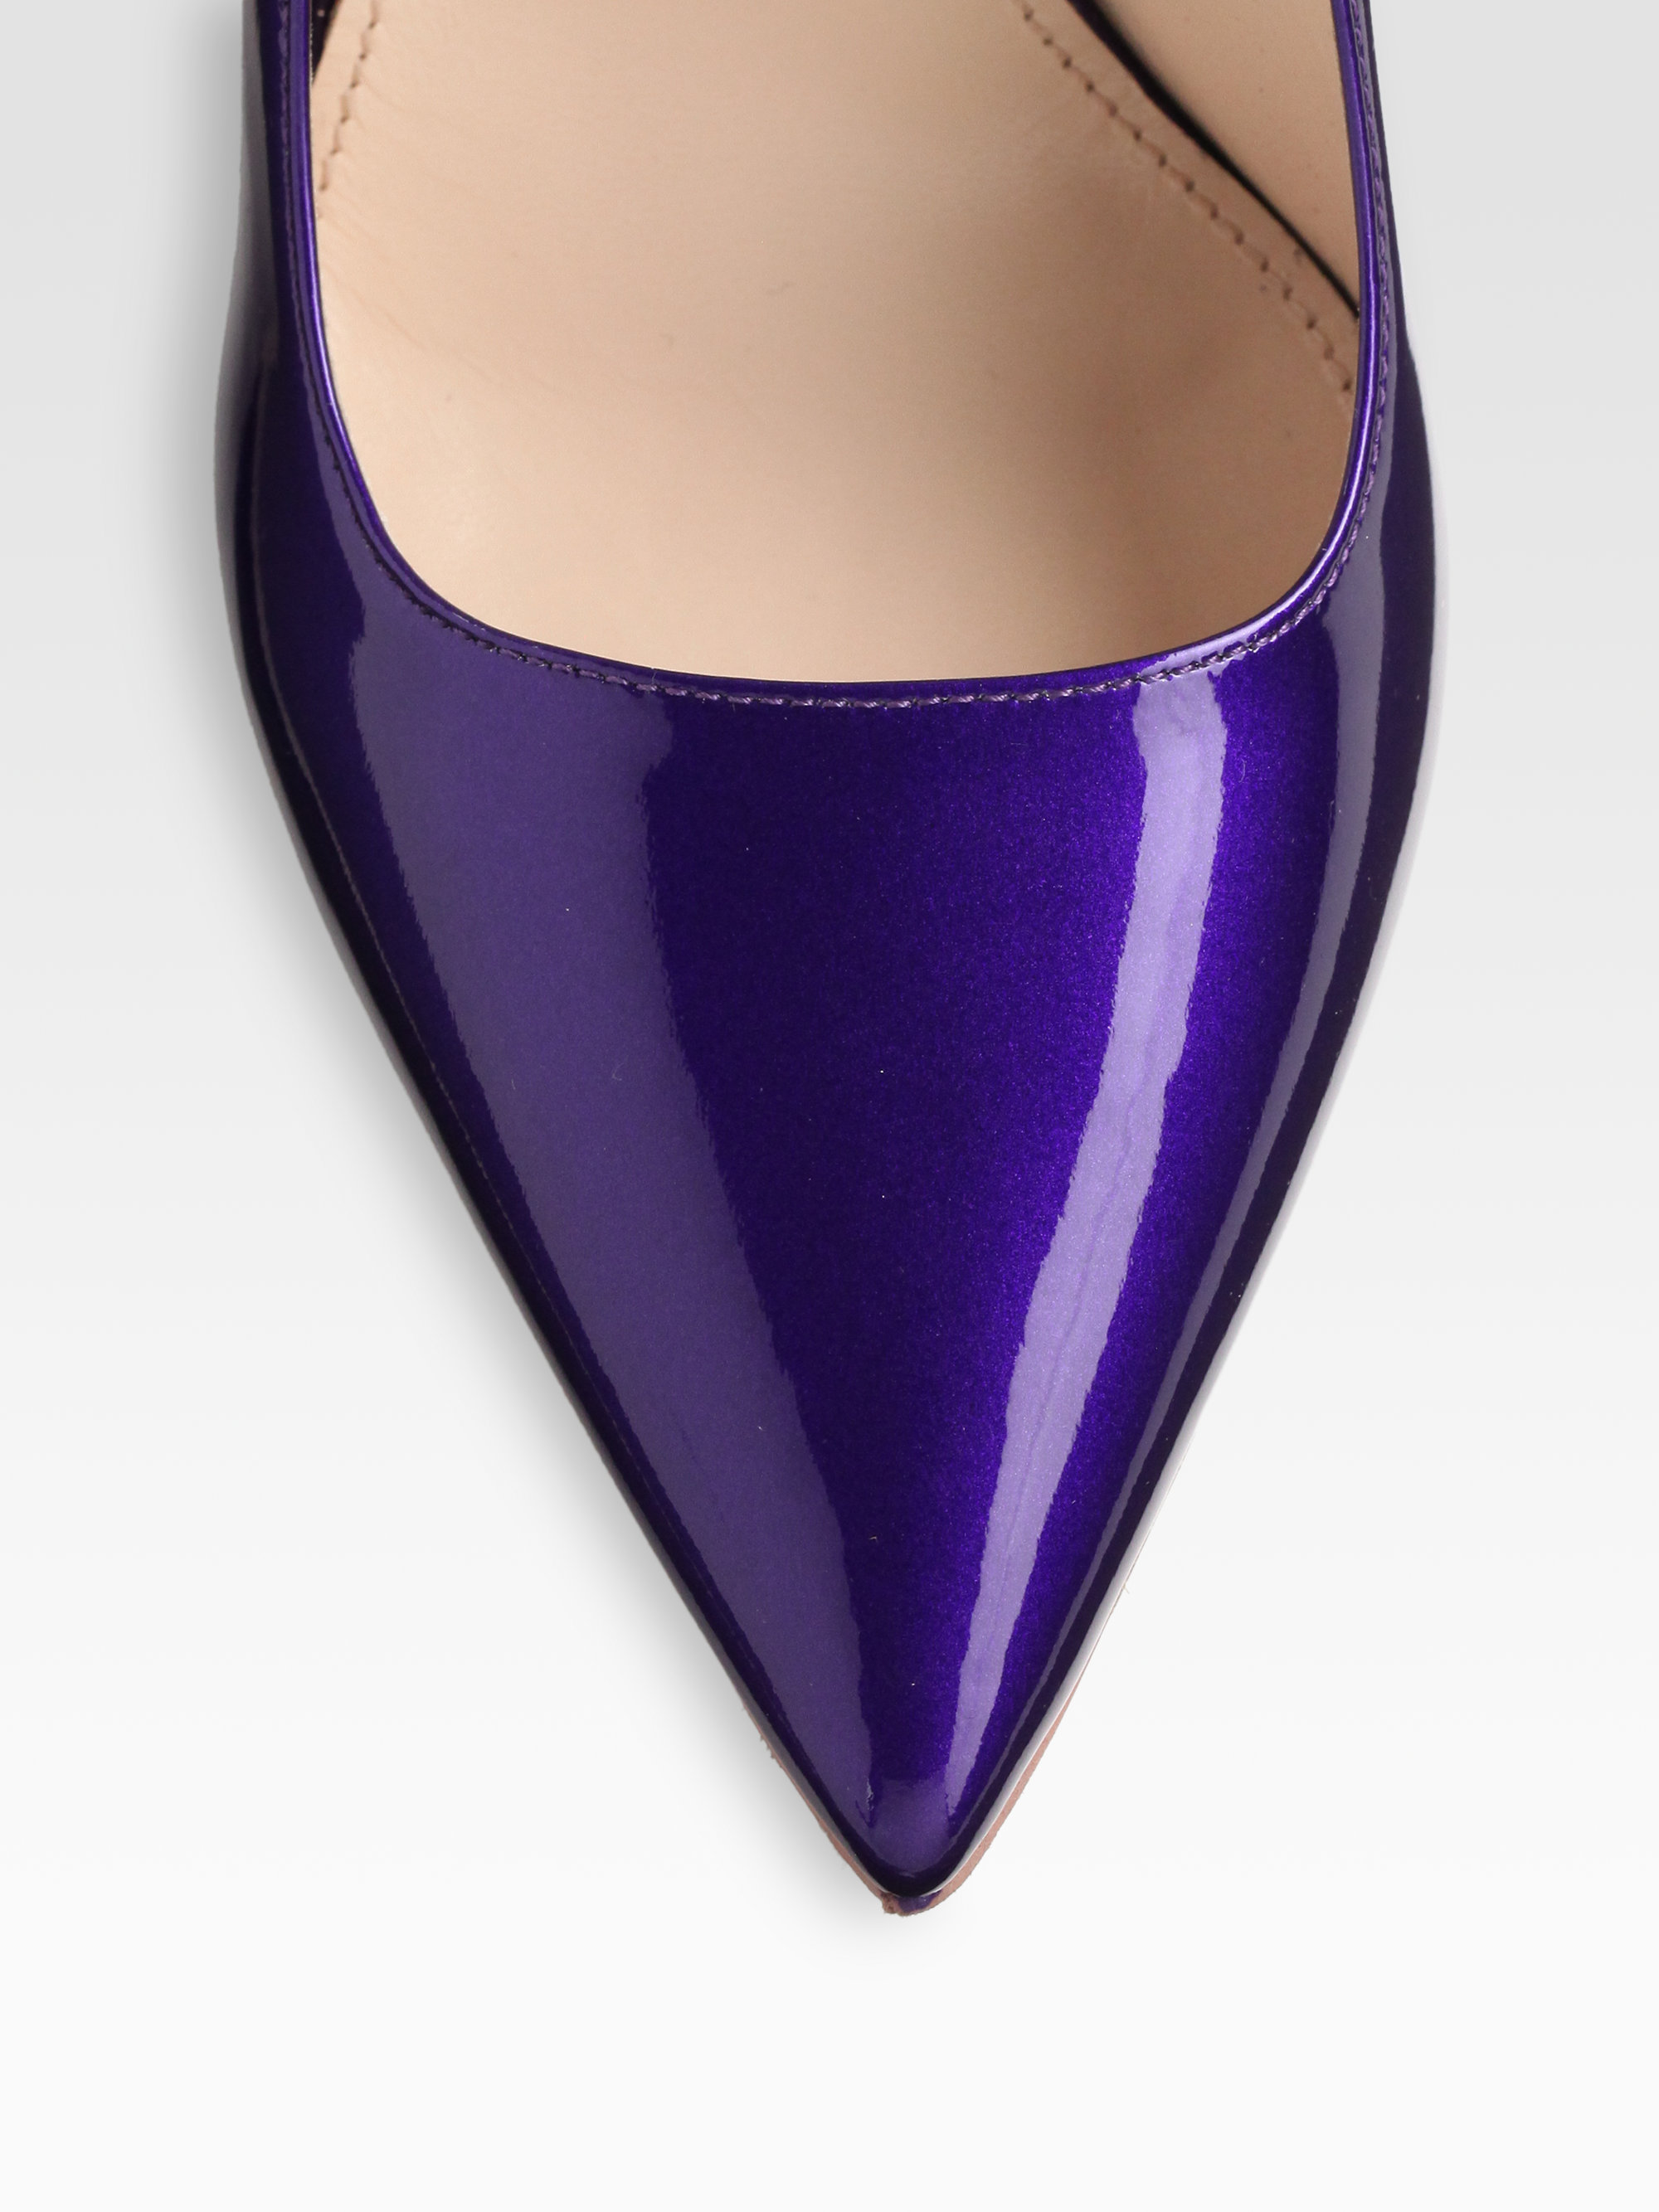 Prada Patent Leather Chrome Heel Pumps in Purple | Lyst